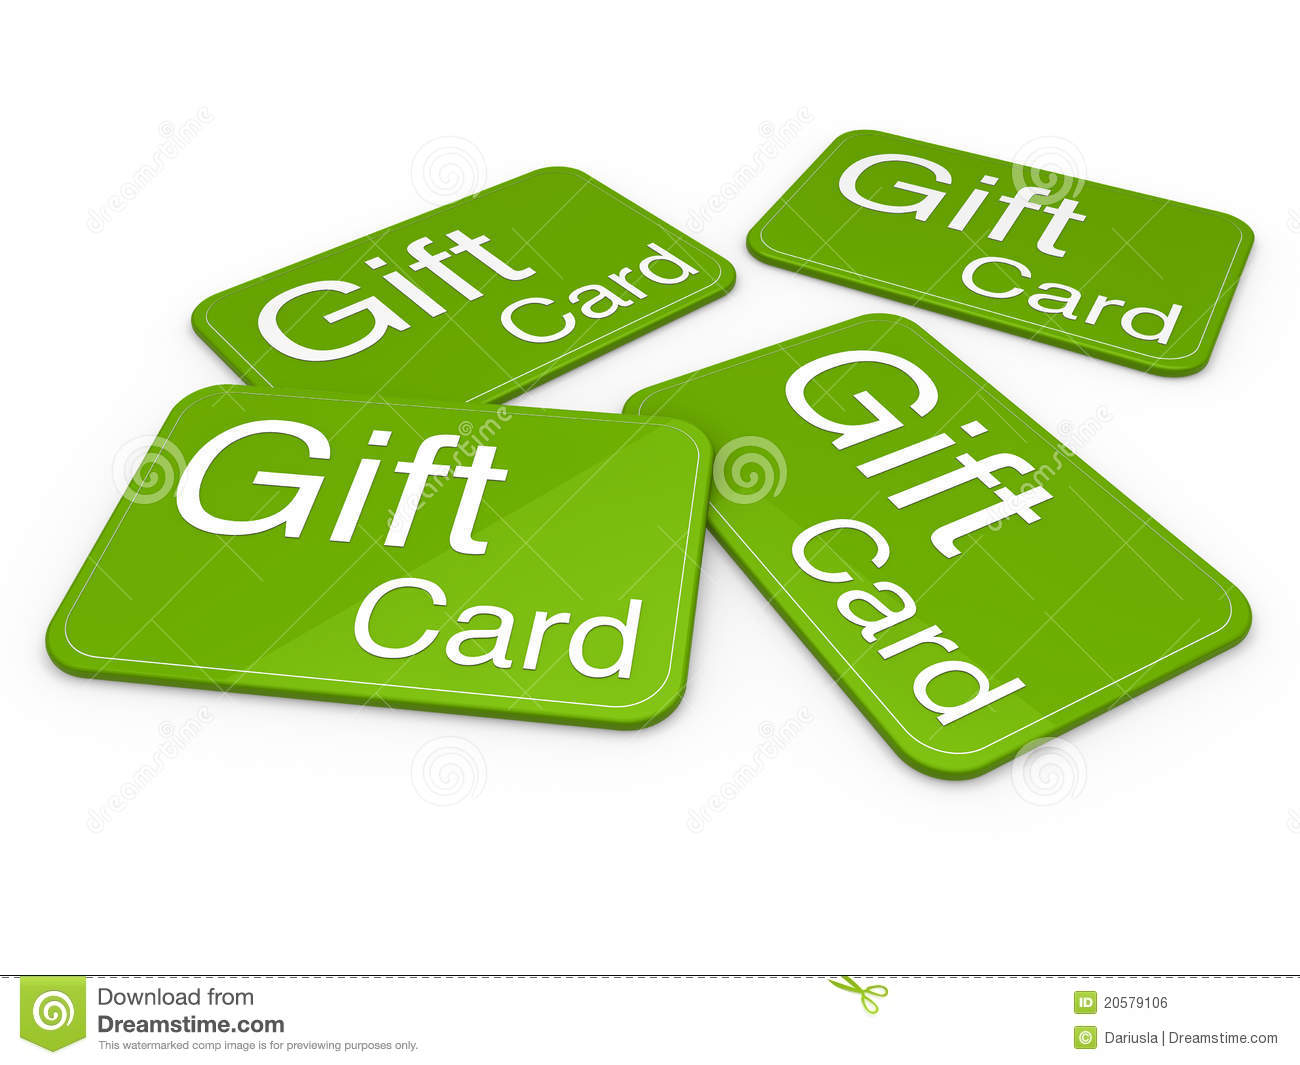 Gift card for small business choice image free business cards credit card for small business with no credit small business credit card for small business with magicingreecefo Images